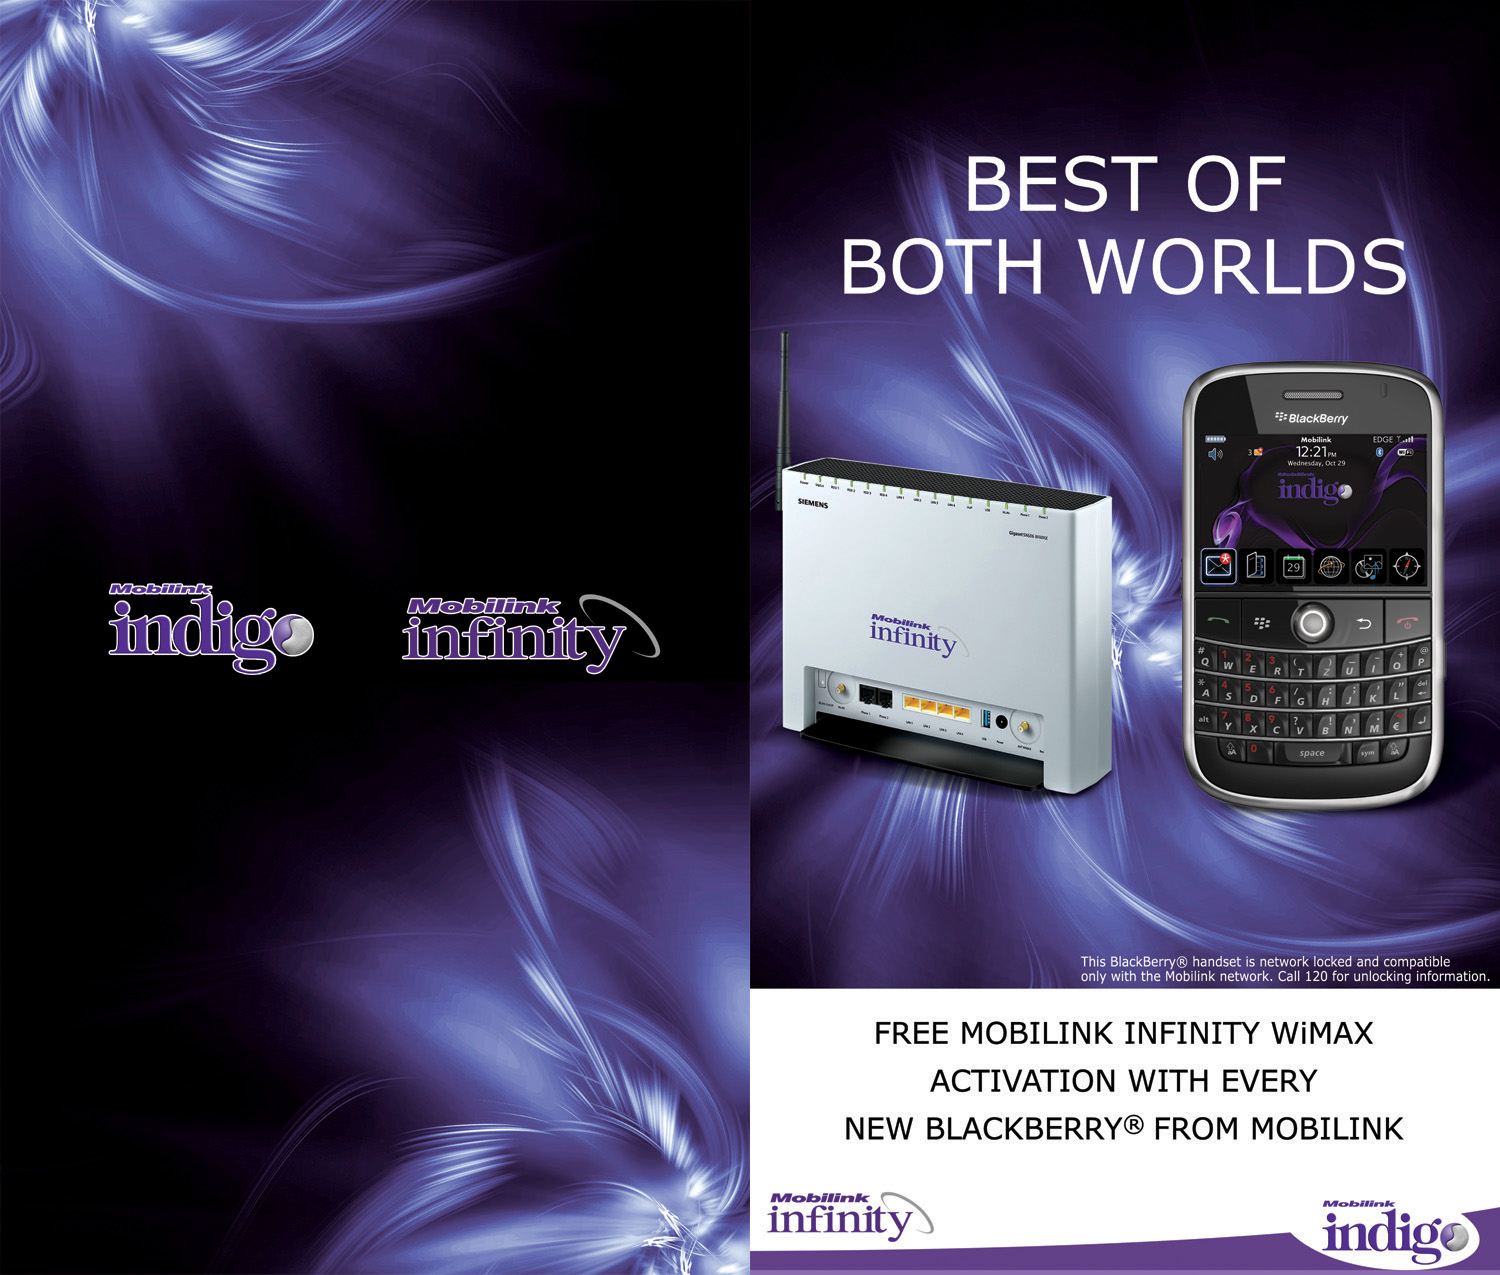 Mobilink Infinity and Blackberry